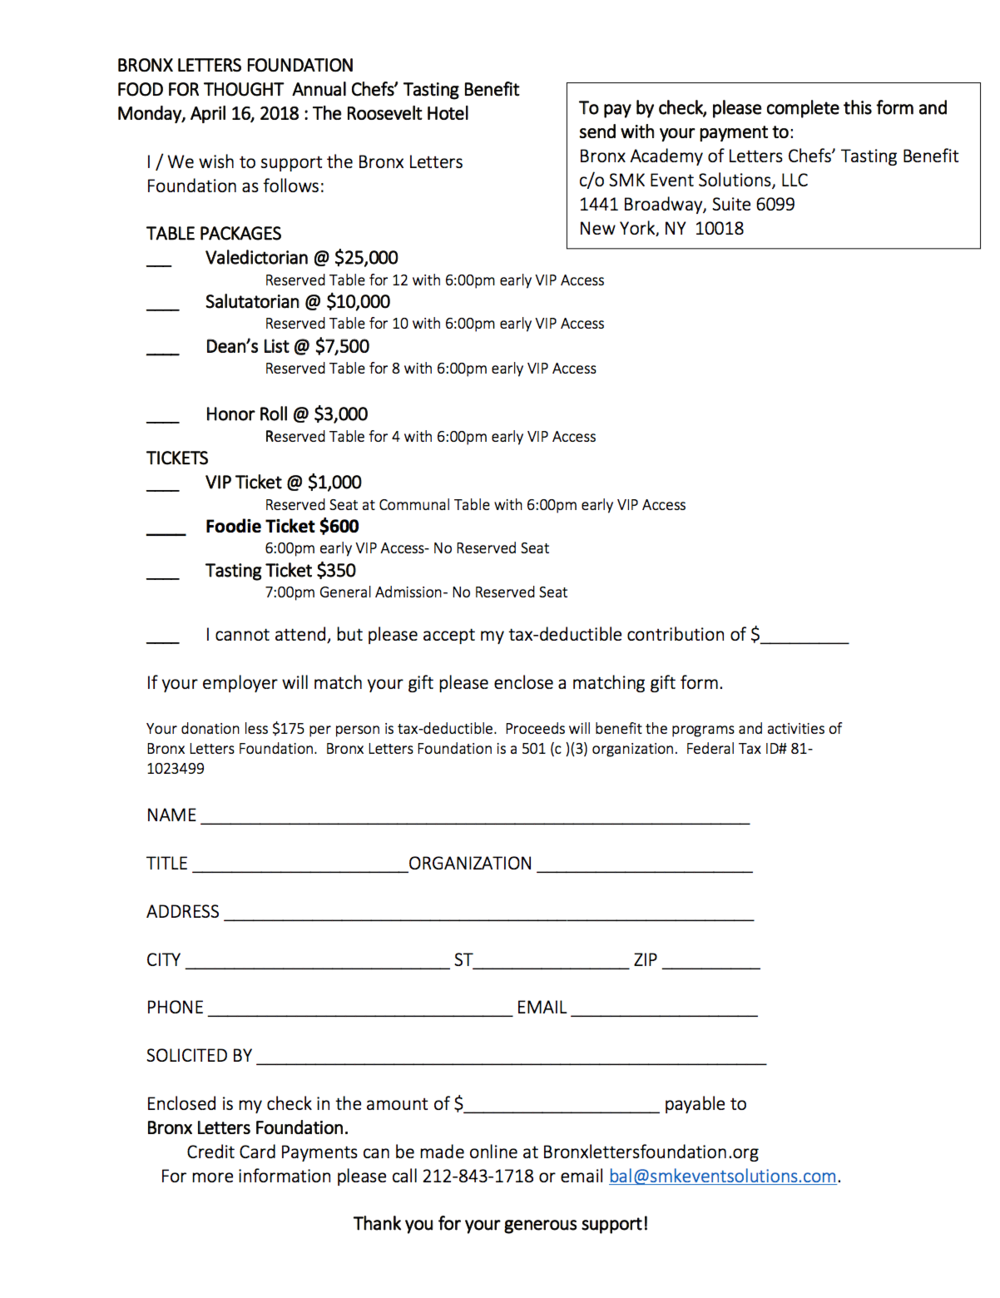 BAL Benefit Payment Form.png